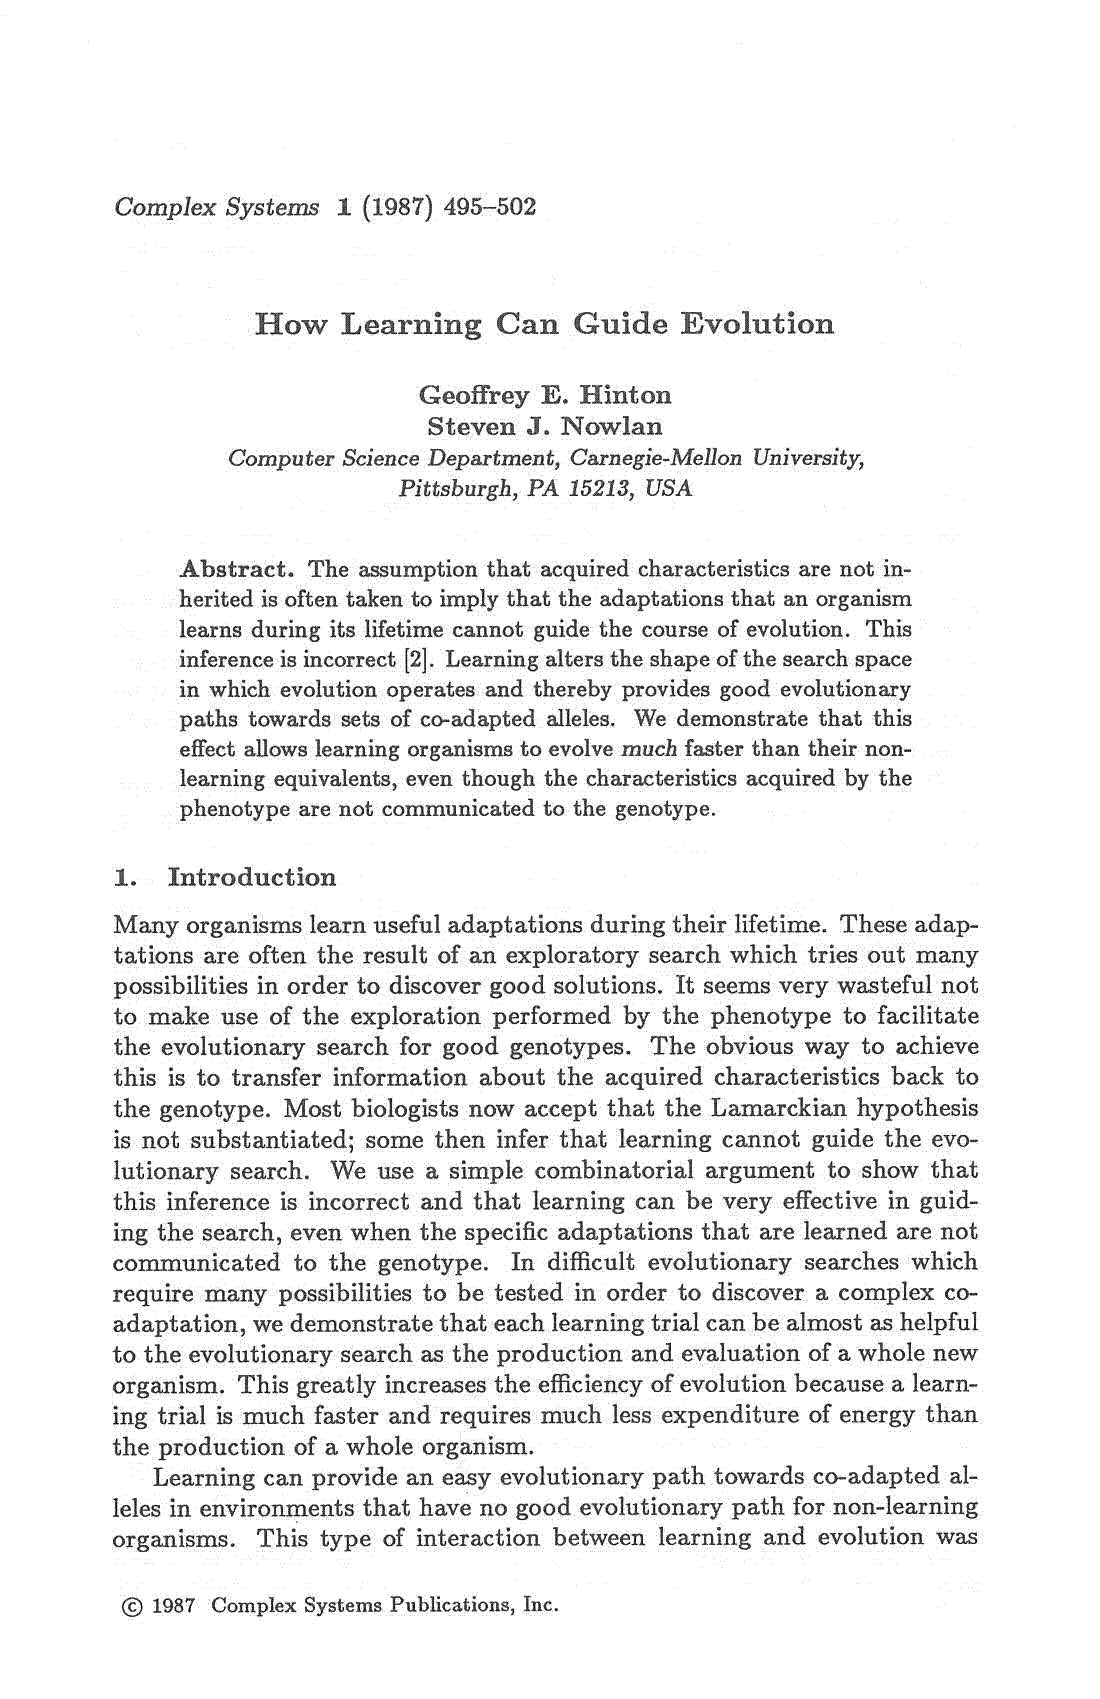 Complex Systems 1 (1987) 495-502 How Learning Can Guide Evolution Geoffrey E. Hinton Steven J. Nowlan Computer Science Department, Carnegie-Mellon University, Pittsburgh, PA 15213, USA Abstract.